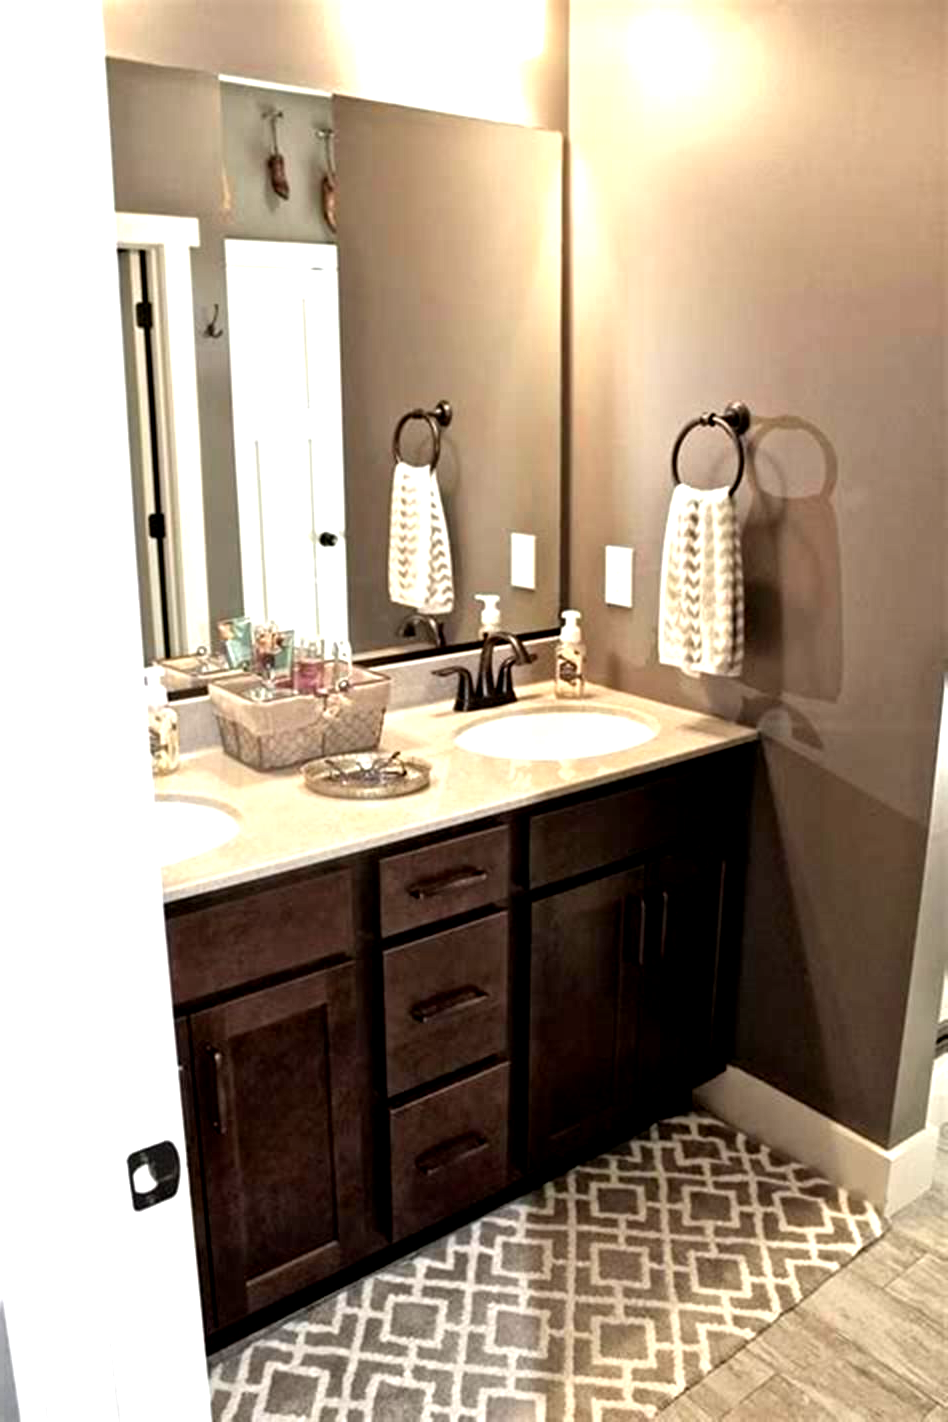 40 Best Color Schemes Bathroom Decorating Ideas On A Budget 2019